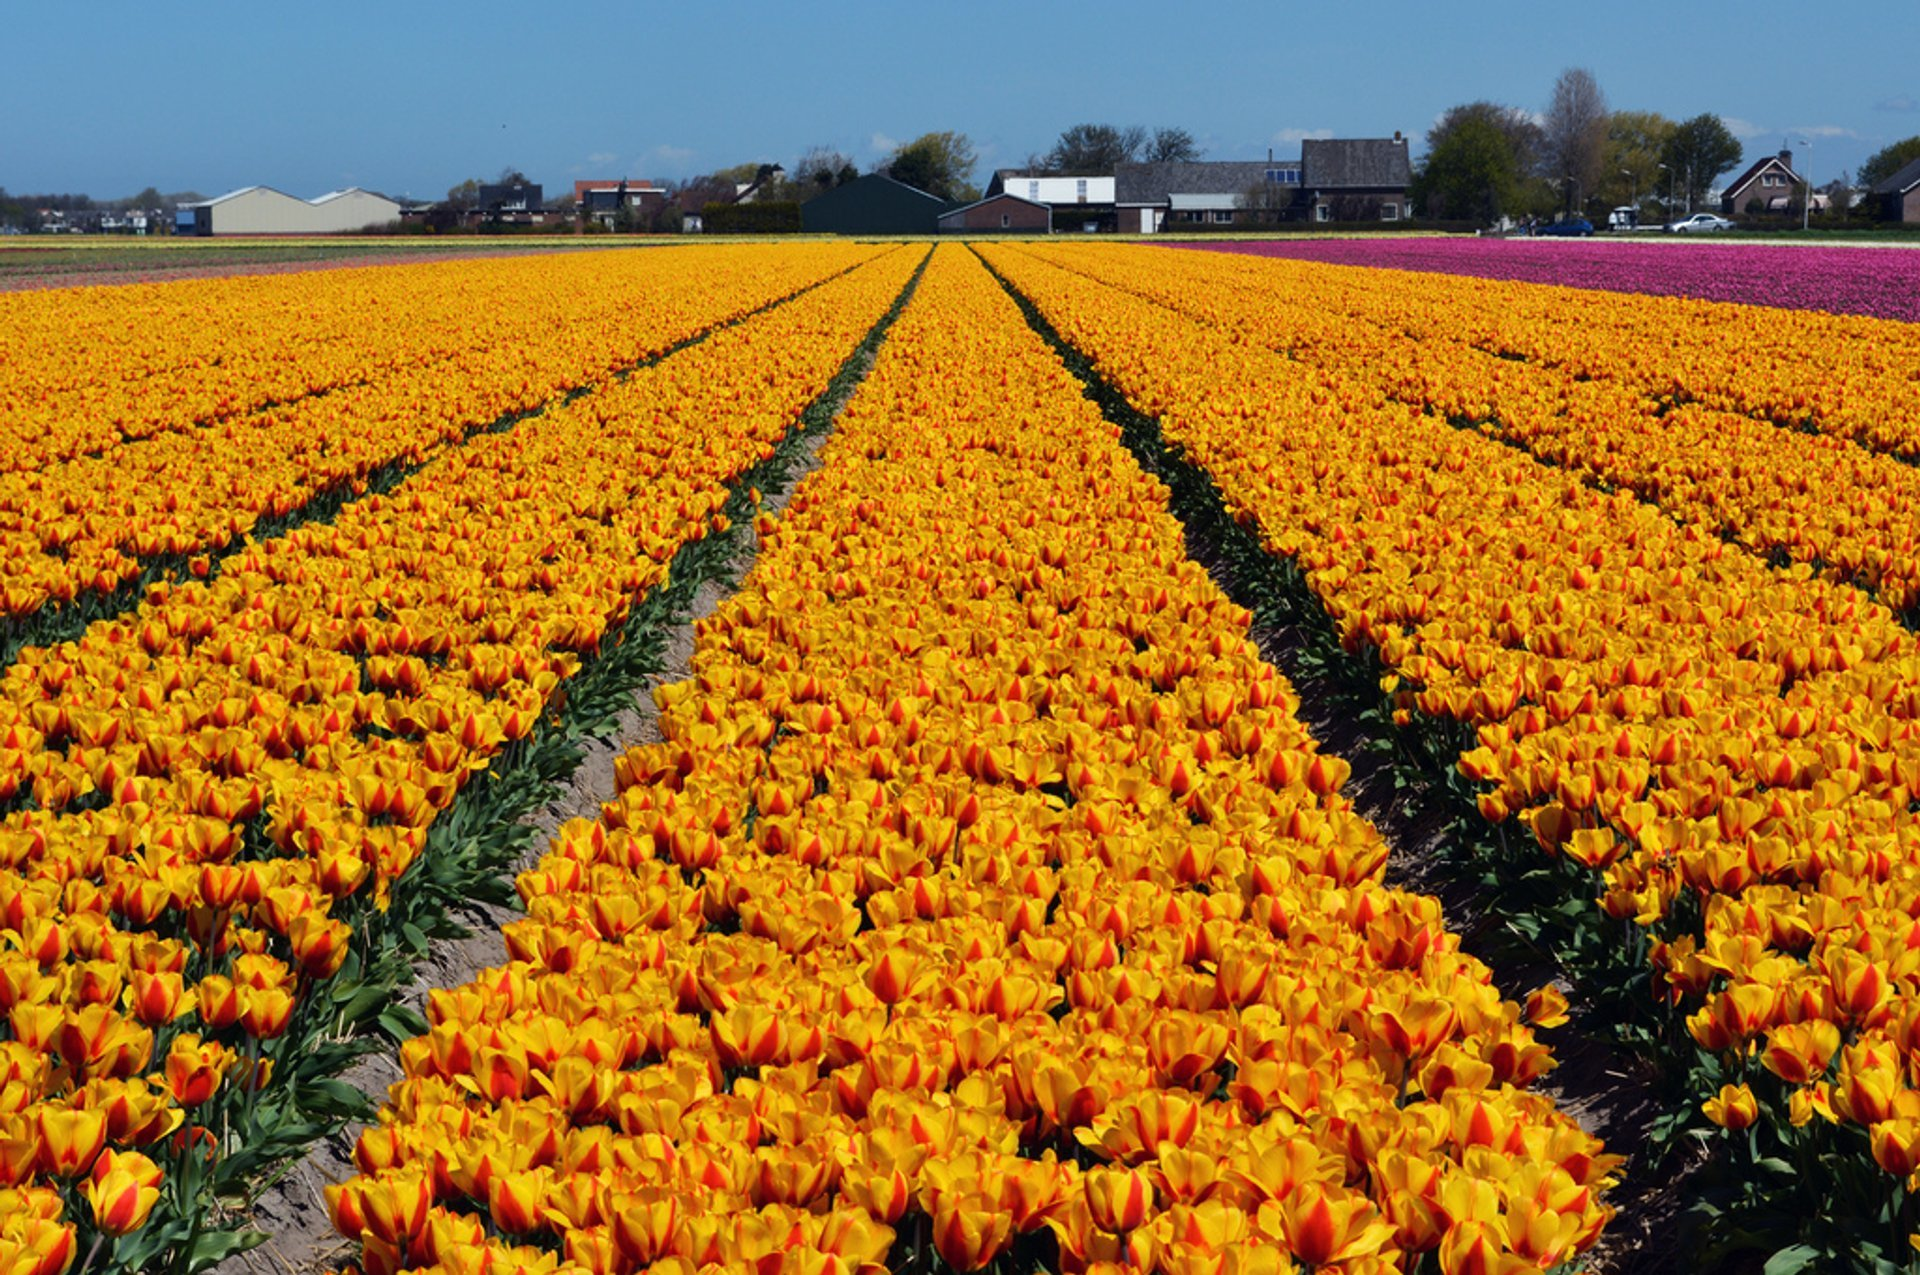 Tulip Season in The Netherlands 2020 - Best Time